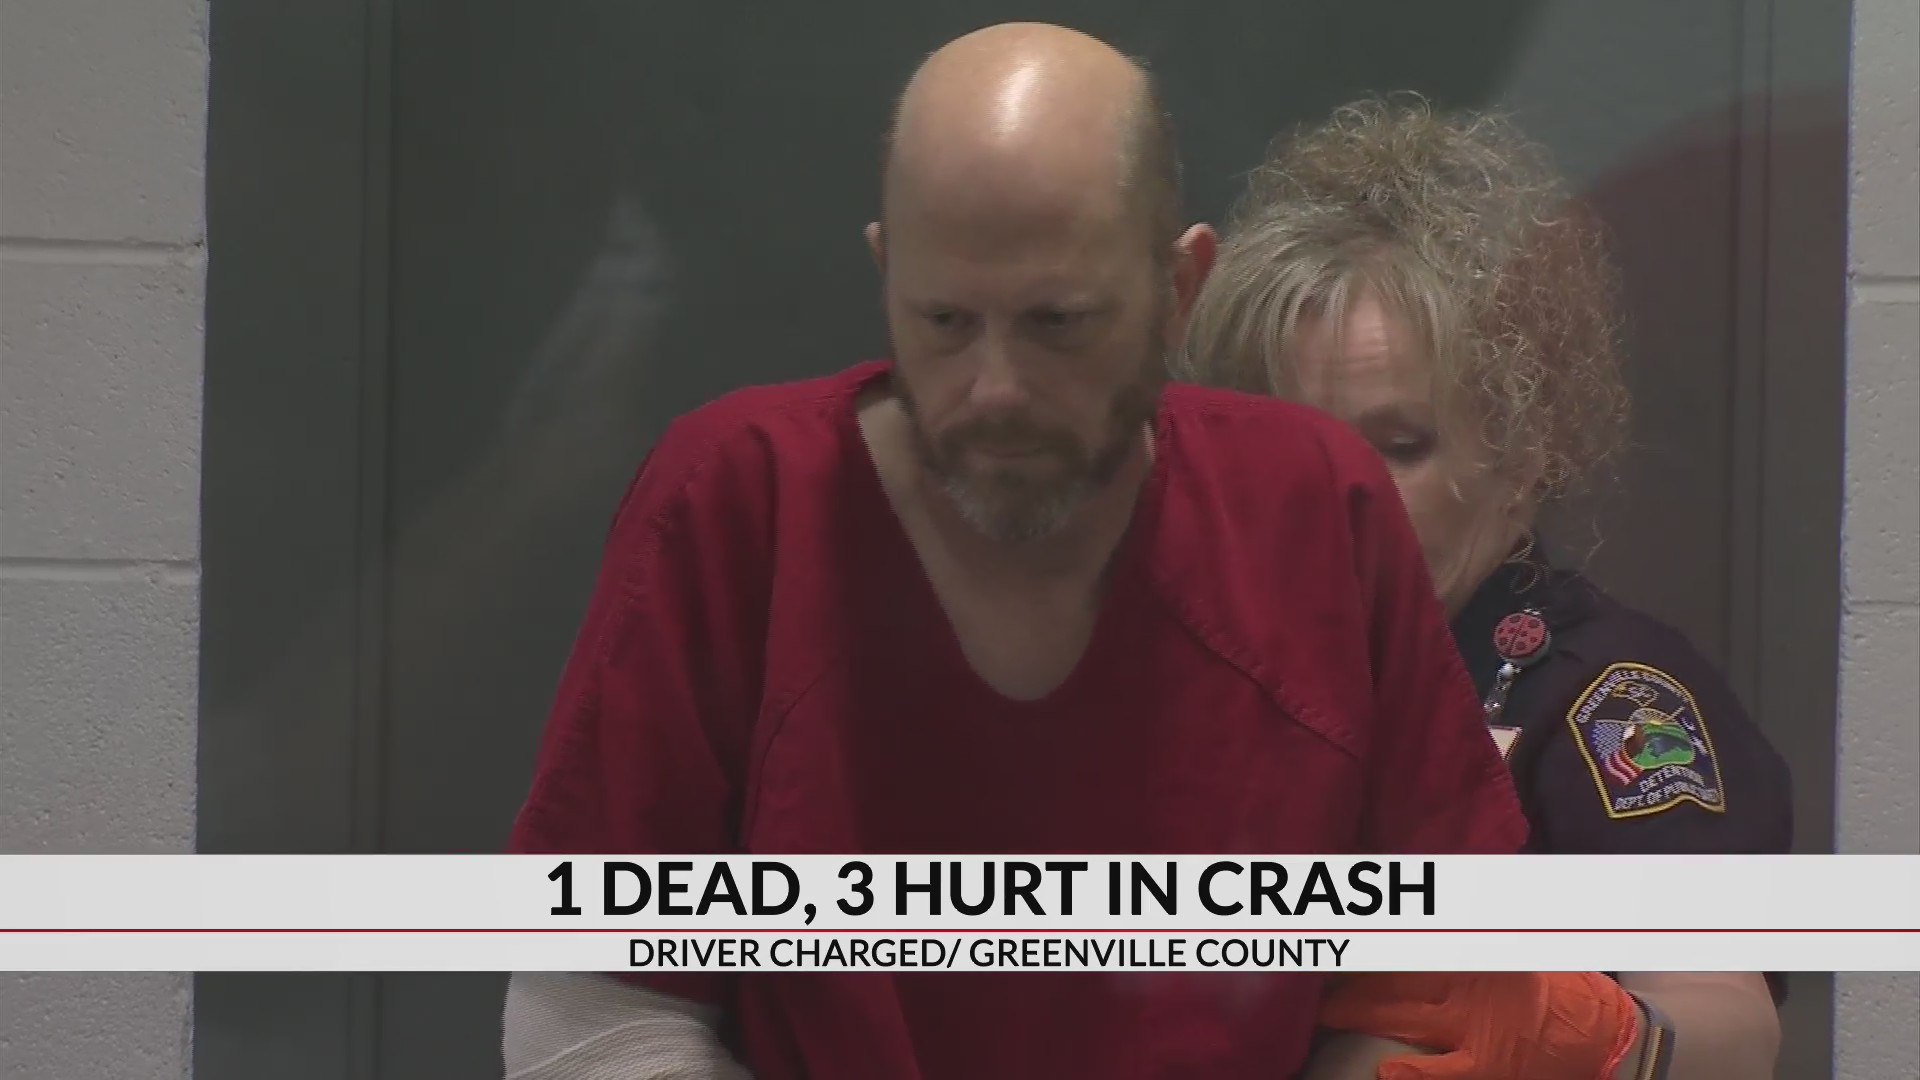 Driver charged with deadly DUI appears in court